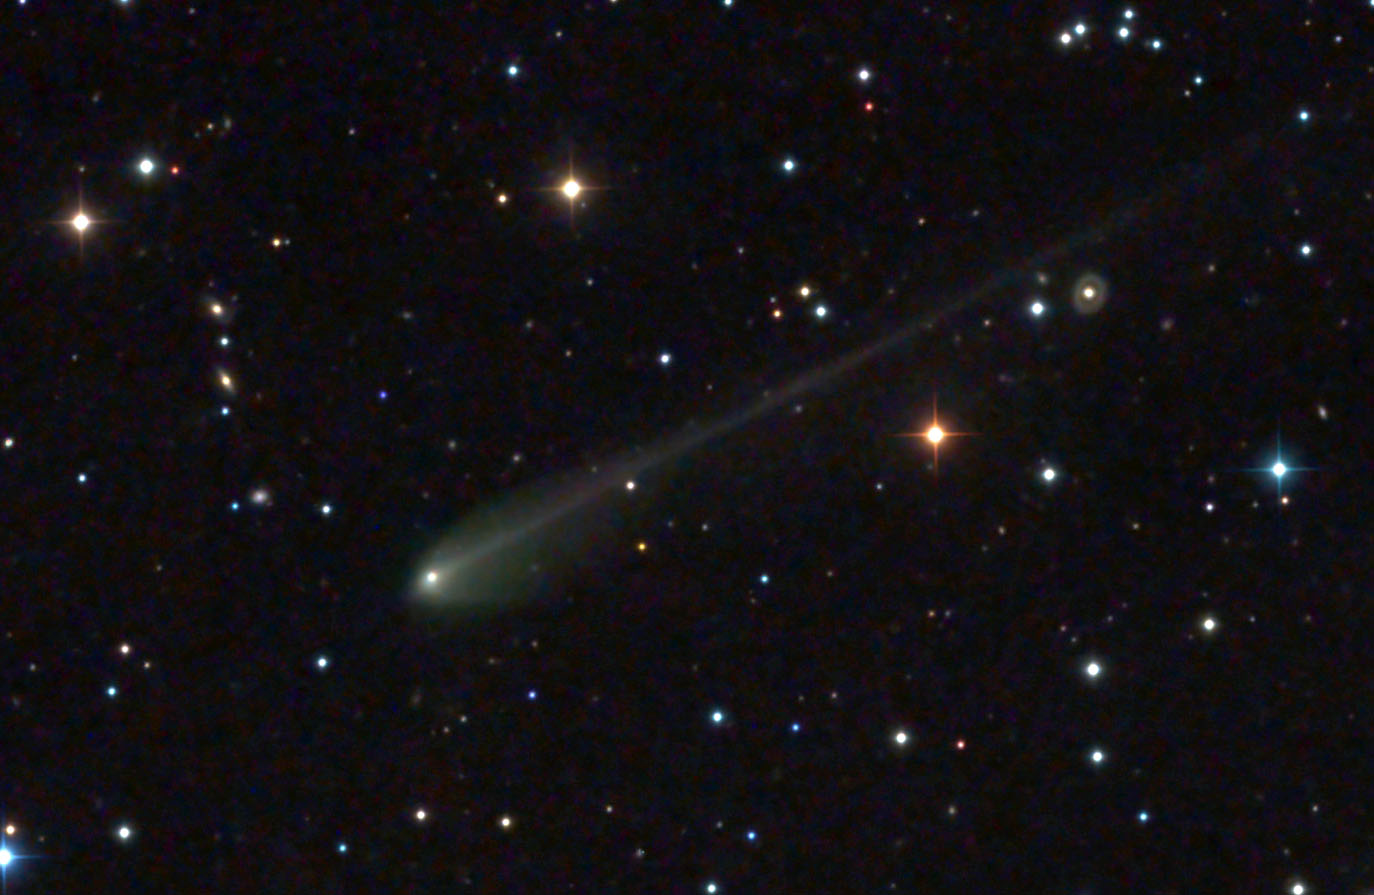 Want to see the brightest comet in over 20 years? Head out